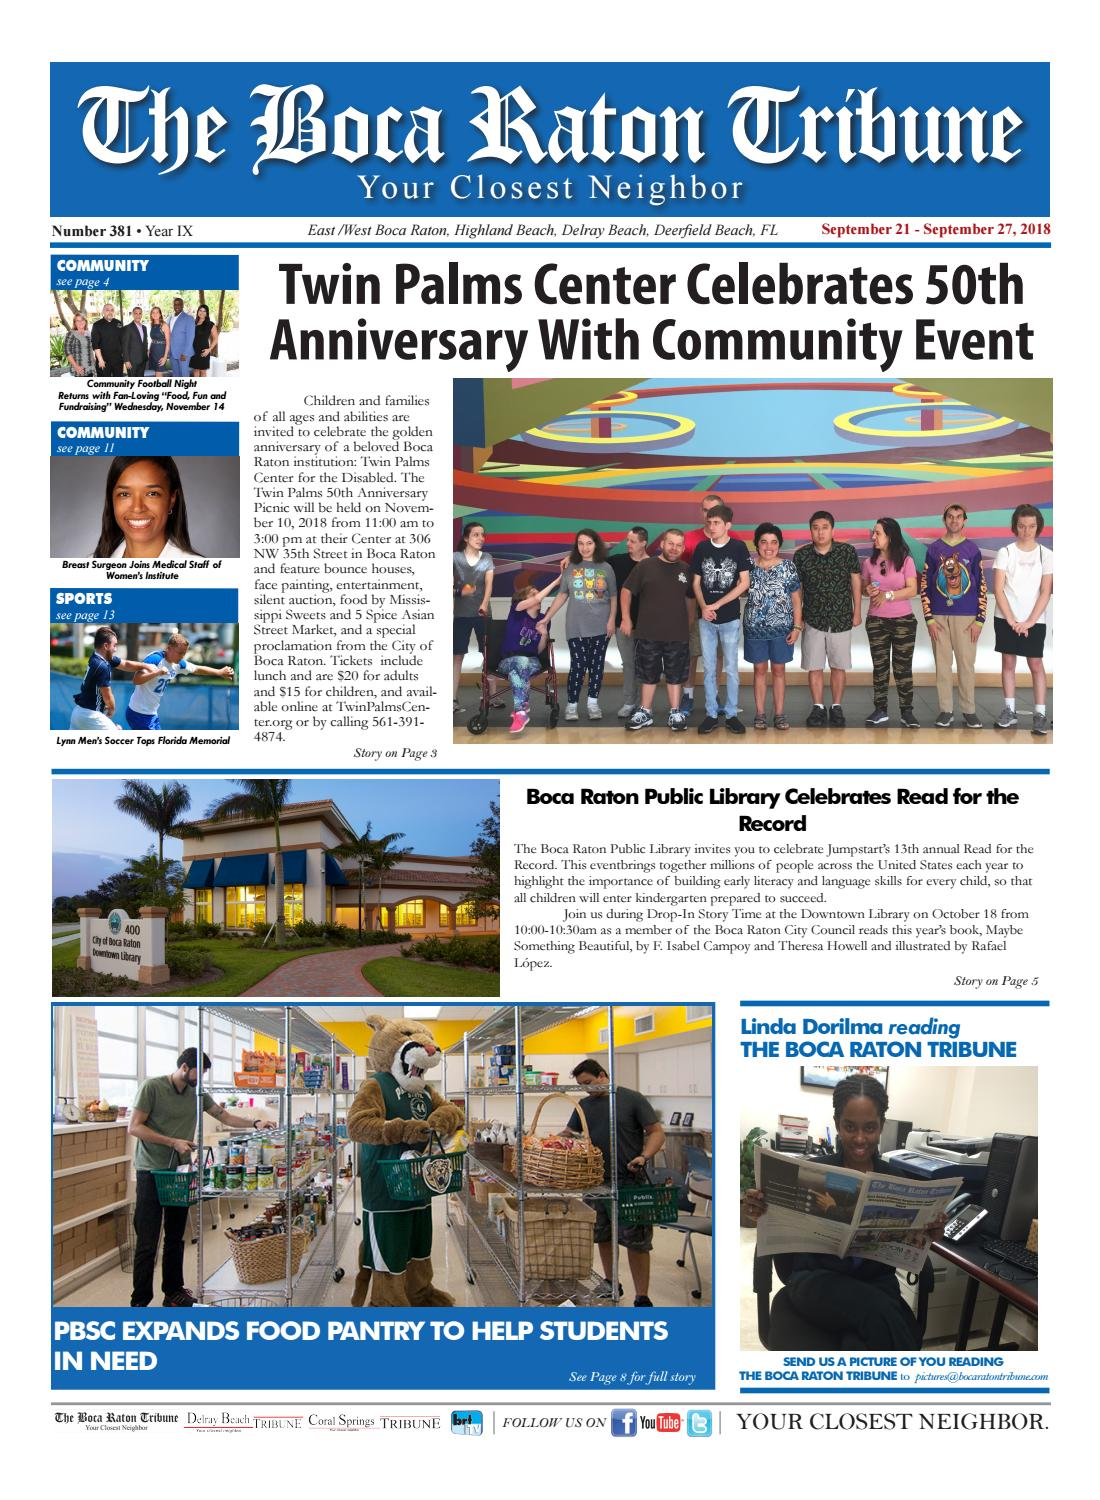 The Boca Raton Tribune ED 381 by The Boca Raton Tribune - issuu